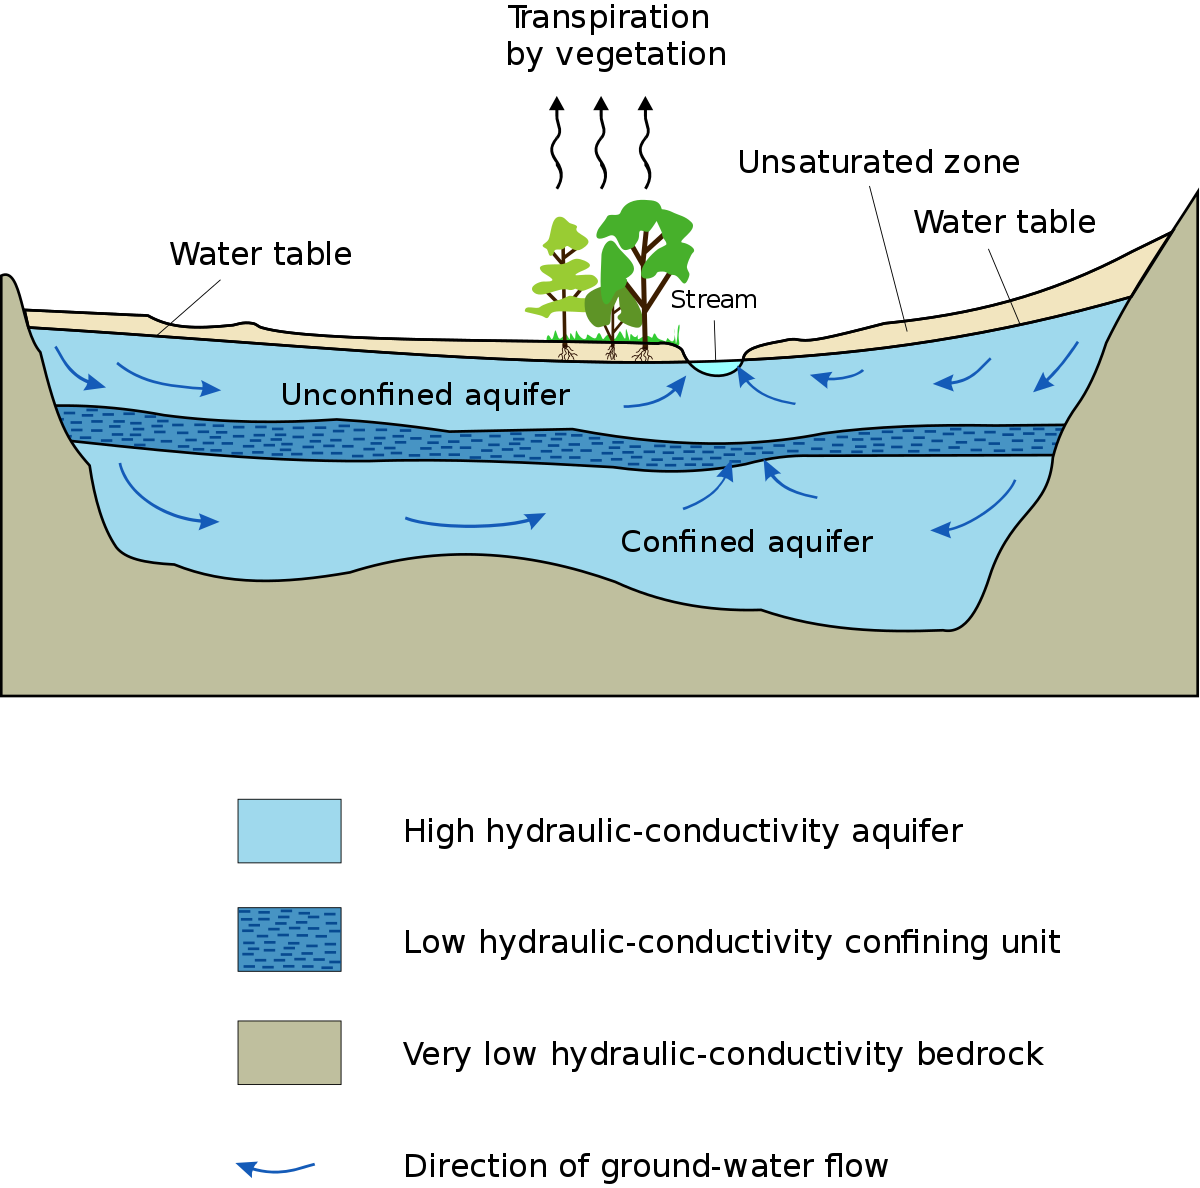 an aquifer is an underground layer of water-bearing permeable rock